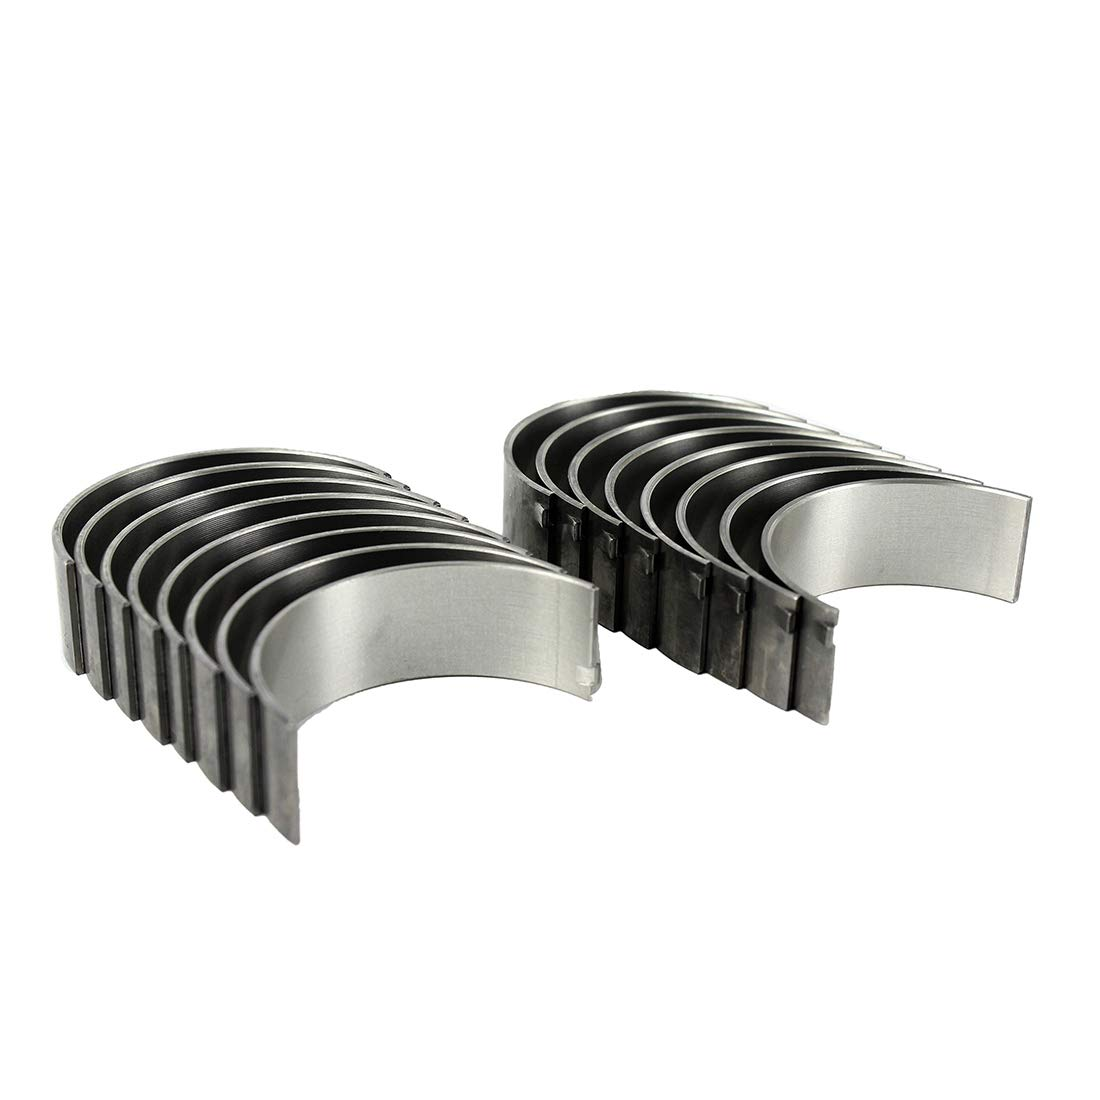 DNJ Engine Components RB1100B Connecting Rod Bearing